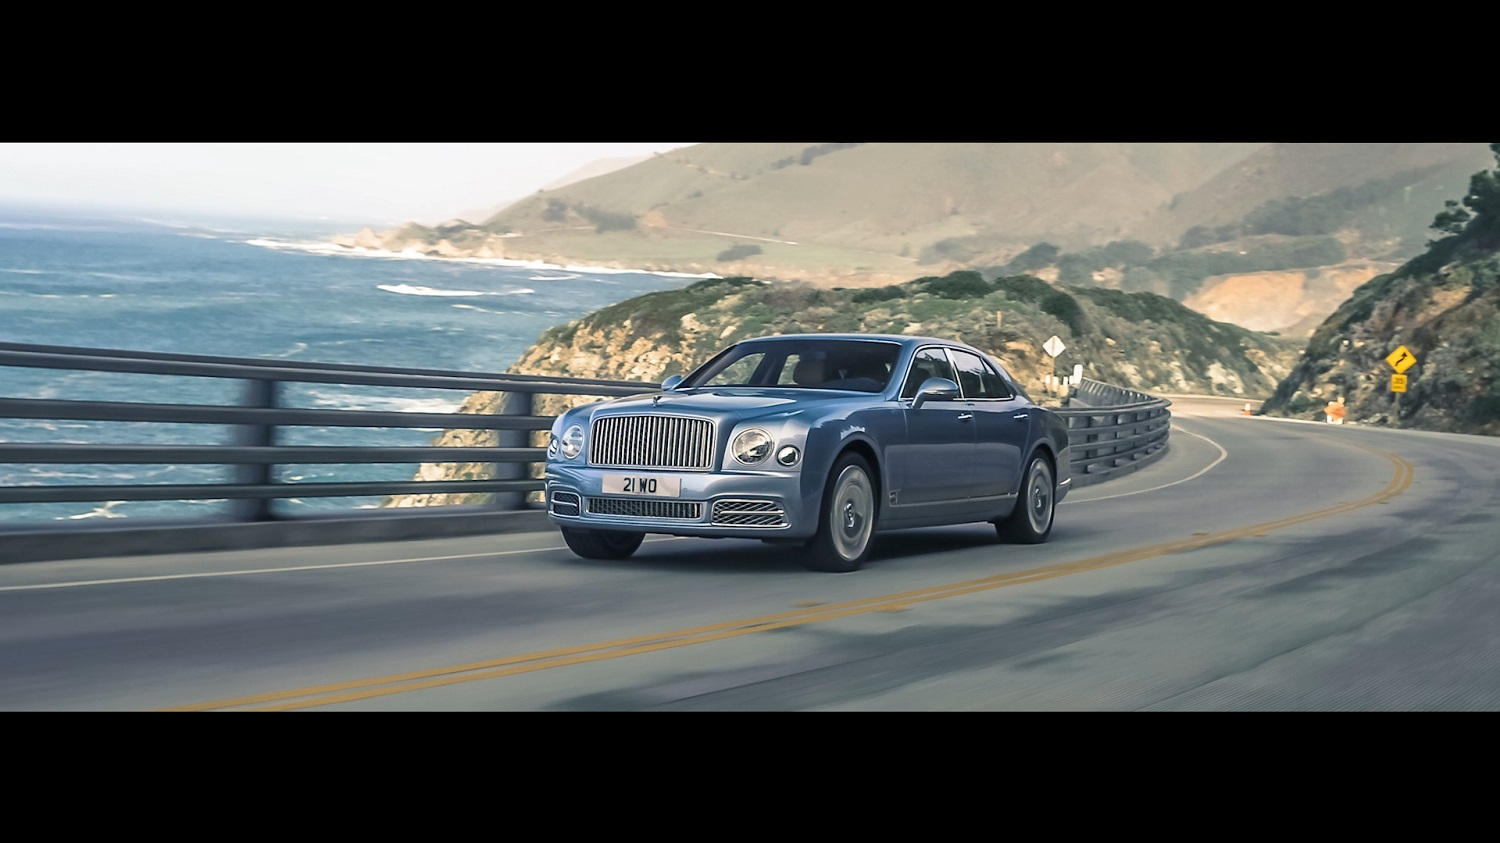 Celebrating 'the Grand Bentley': A Decade Of Highlights Captured In Film